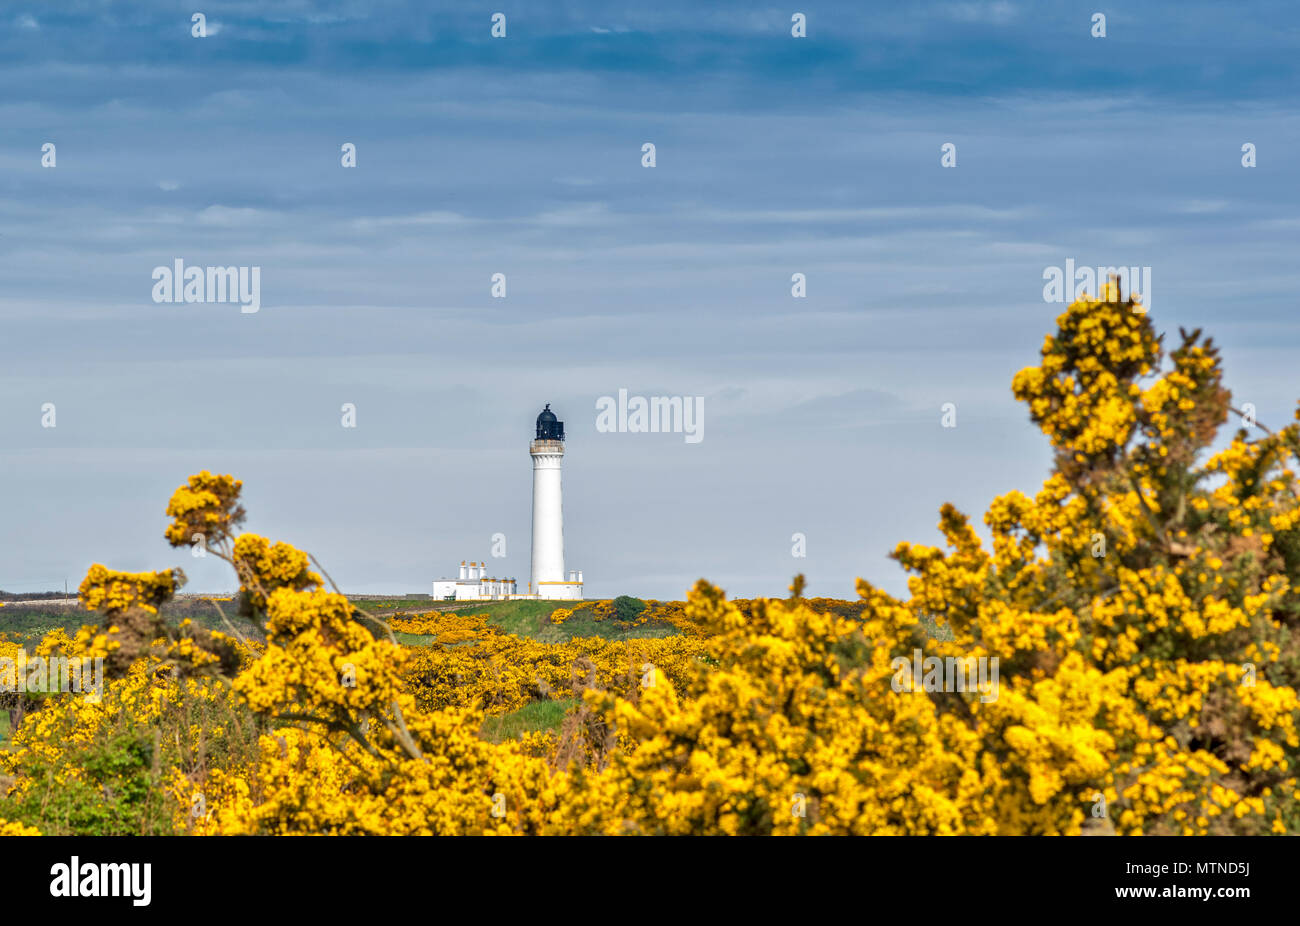 COVESEA LIGHTHOUSE LOSSIEMOUTH BEACH SCOTLAND WHITE COLUMN AND HOUSES SURROUNDED BY YELLOW GORSE FLOWERS IN SPRING - Stock Image